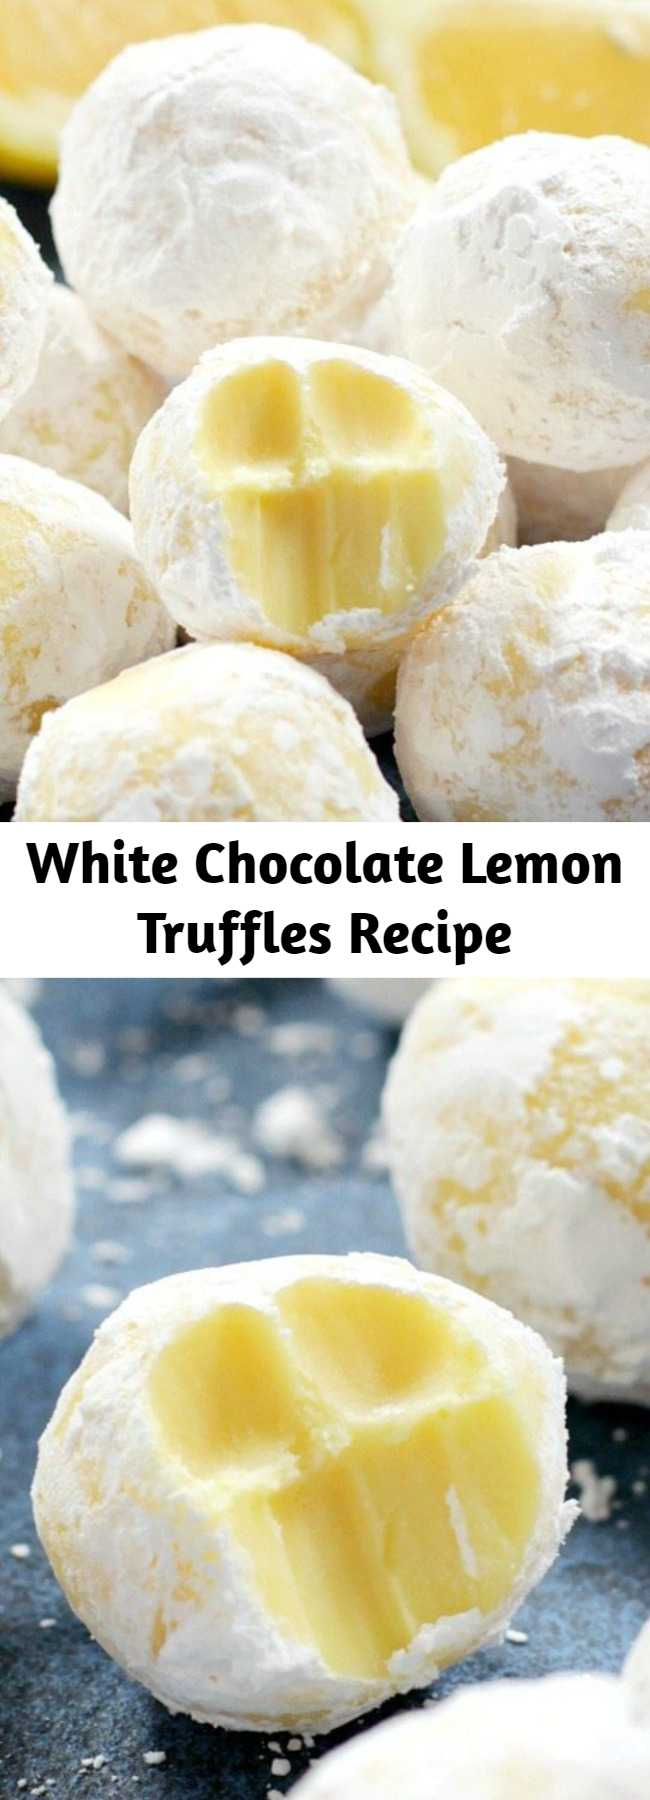 White Chocolate Lemon Truffles Recipe - These creamy White Chocolate Lemon Truffles will become a new holiday favorite! Perfect for gift giving or including on a cookie tray.